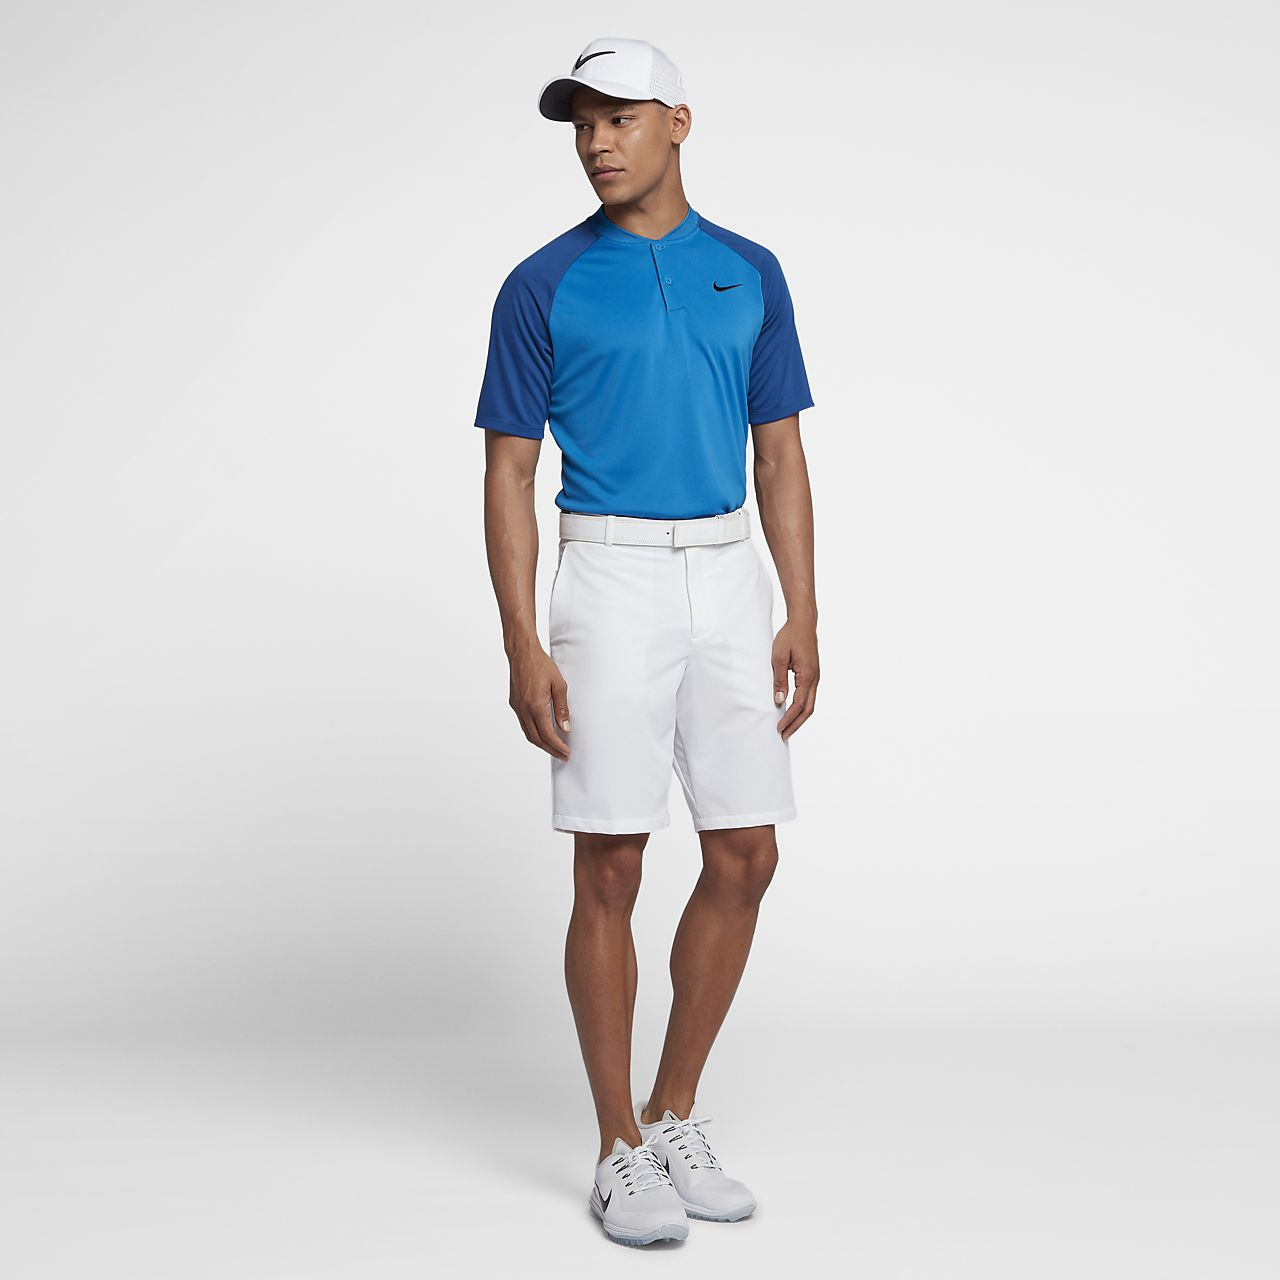 ... Nike Dri-FIT Momentum Men\u0027s Standard Fit Golf Polo